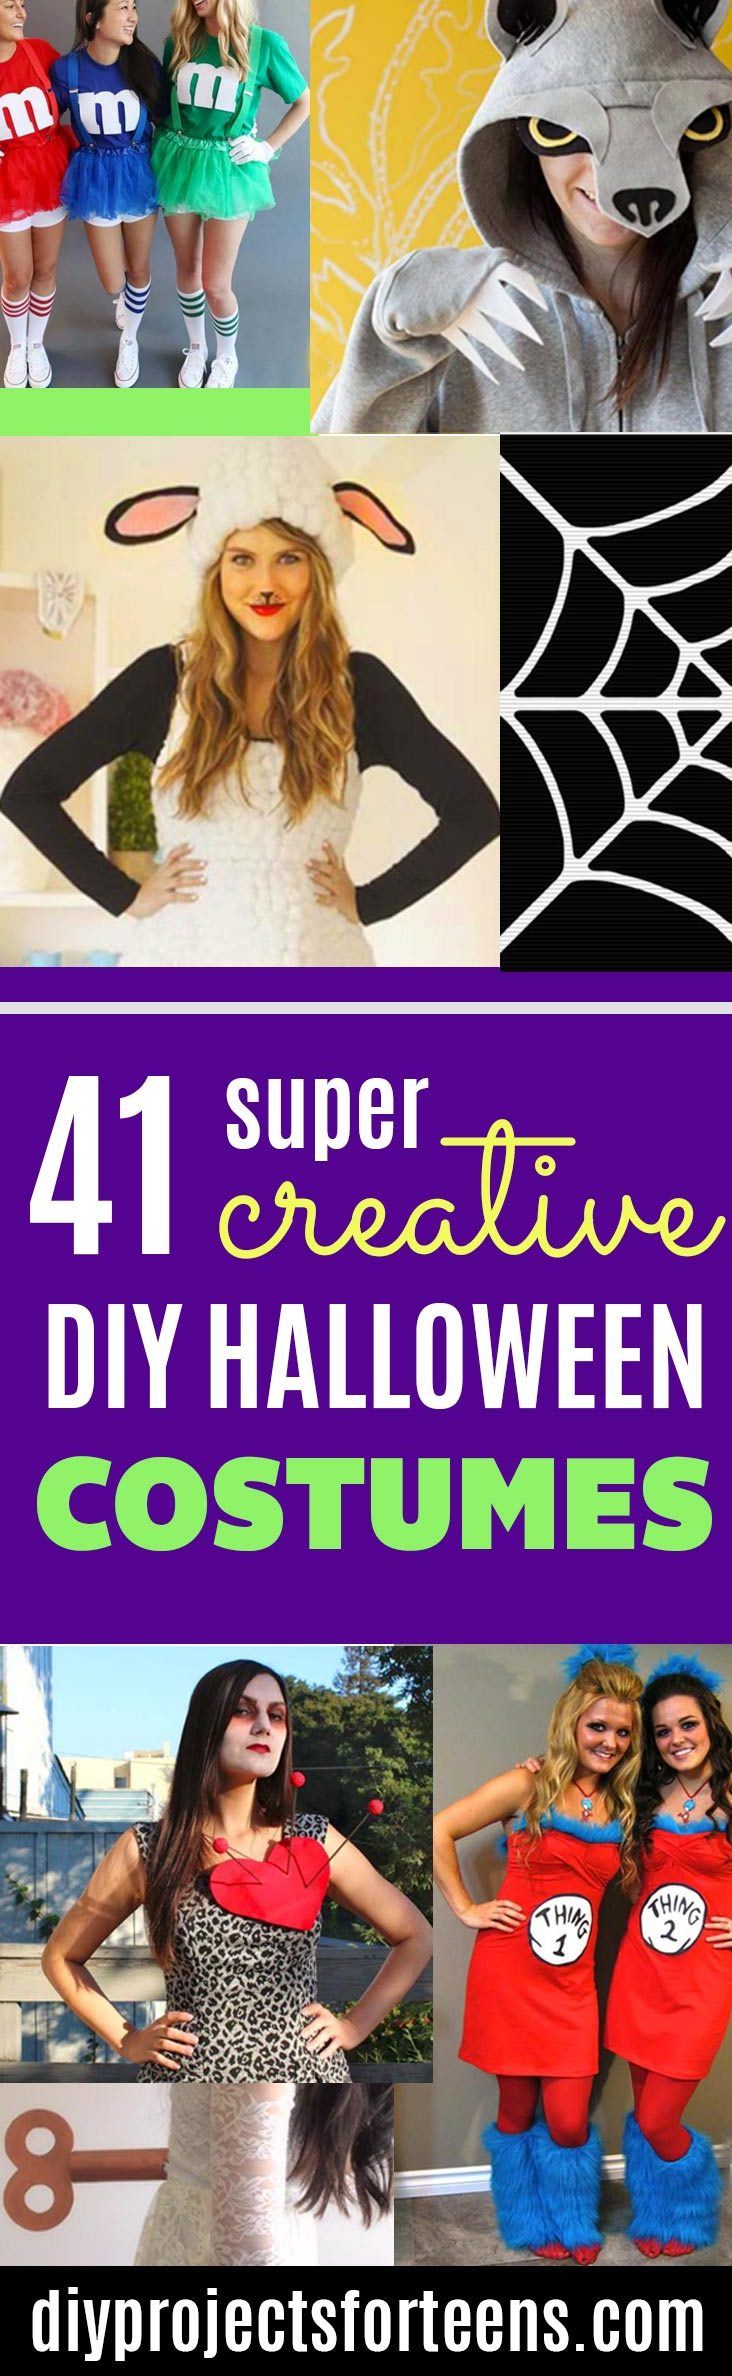 Best Last Minute DIY Halloween Costume Ideas - Do It Yourself Costumes for Teens, Teenagers, Tweens - Fun, Clever, Cheap Costumes that Are Easy To Make. Step by Step Tutorials and Instructions